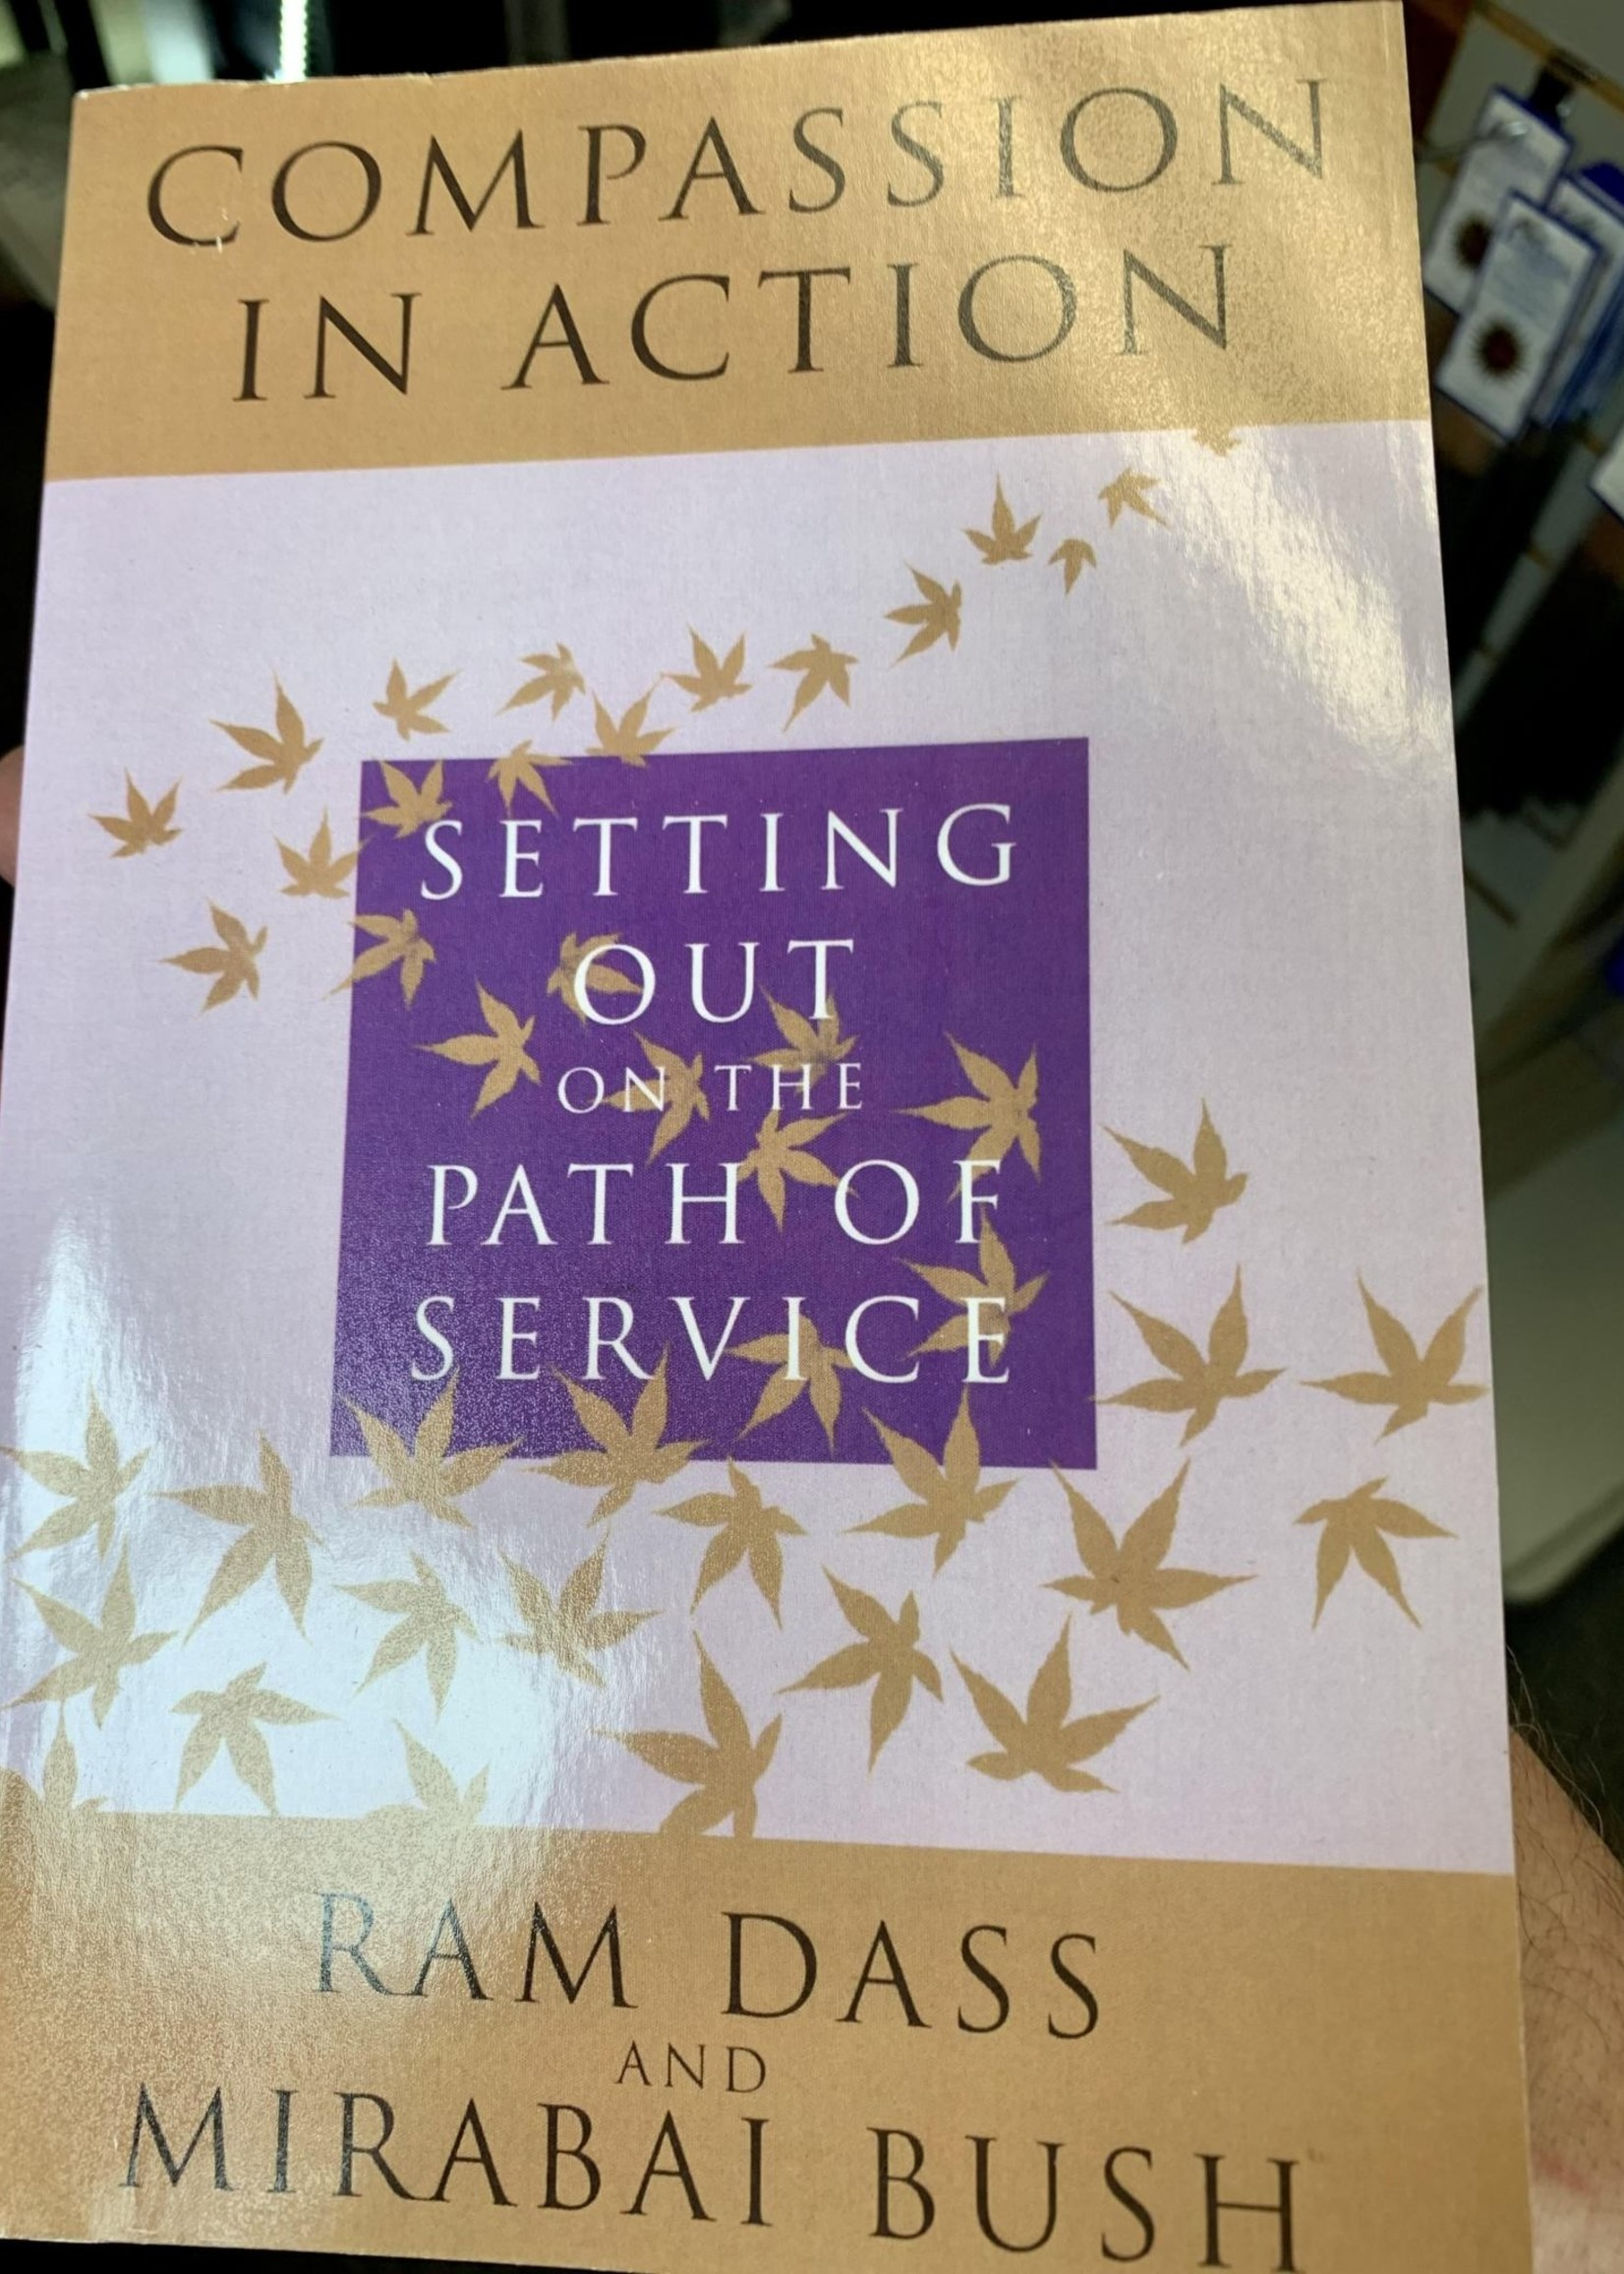 Compassion in Action - Setting Out on the Path of Service - Ram Dass & Mirabai Bush